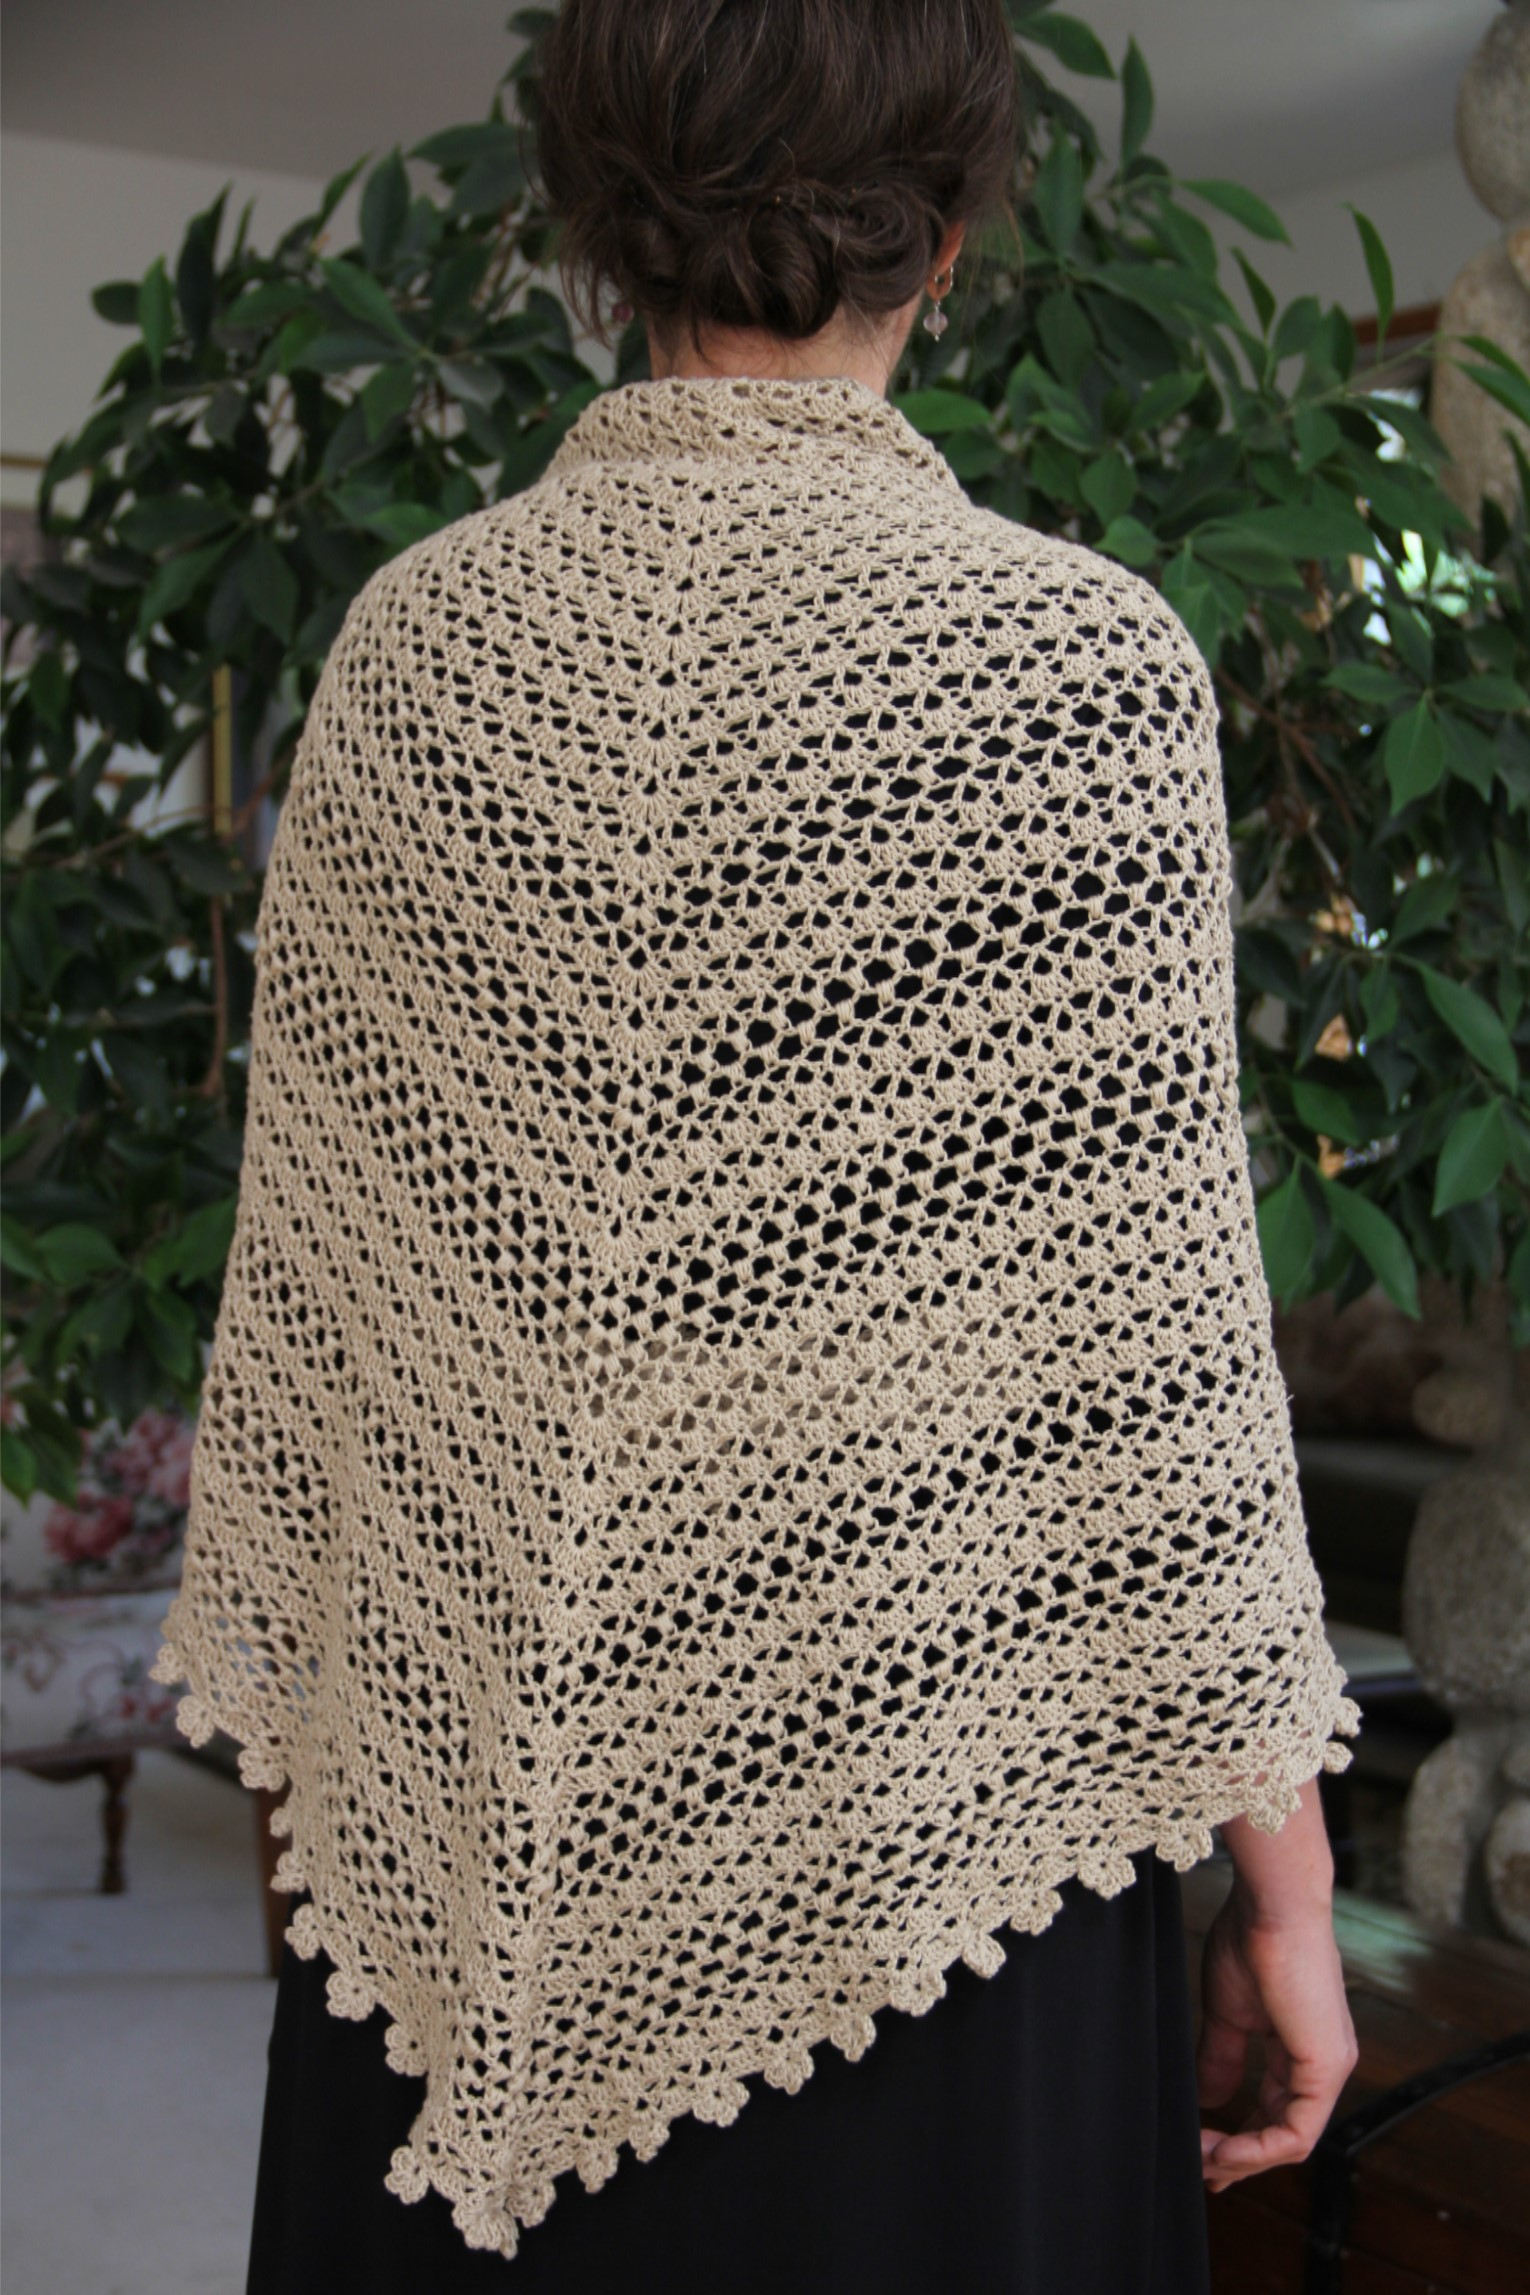 Crochet Beginner Shawl Pattern : Crochet Shawl Patterns - Bing images